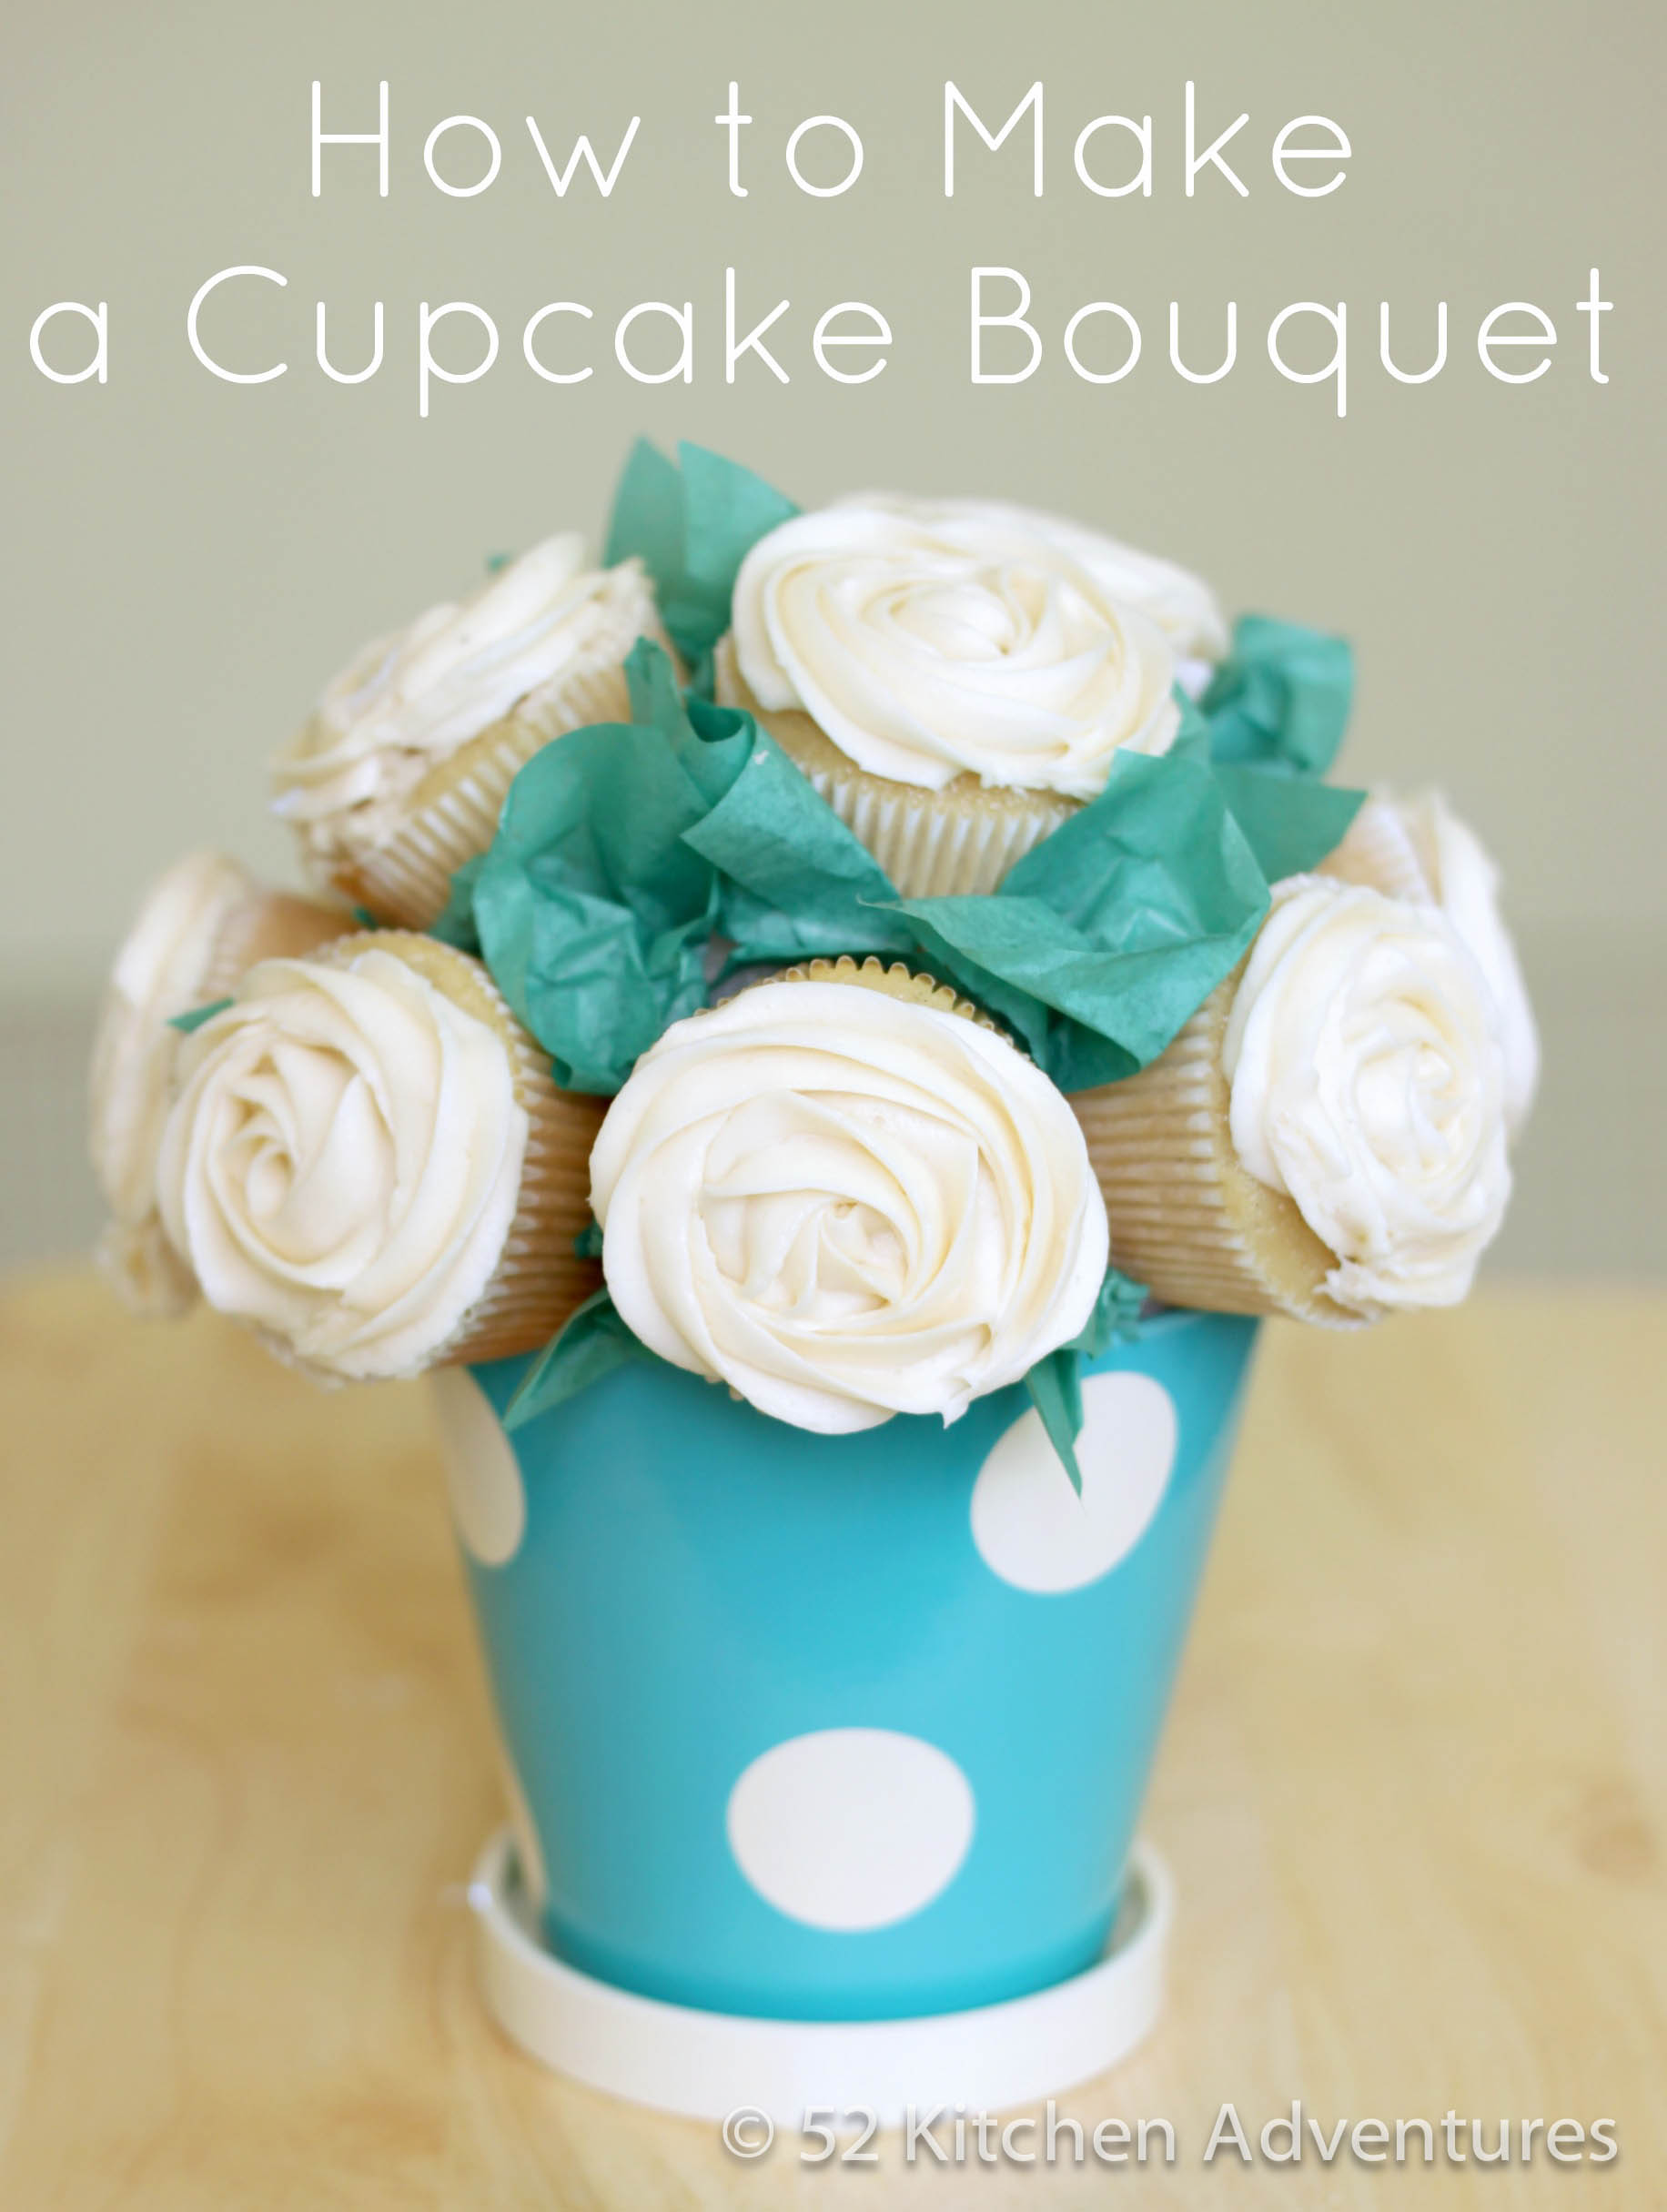 How-to-Make-a-Cupcake-Bouquet1